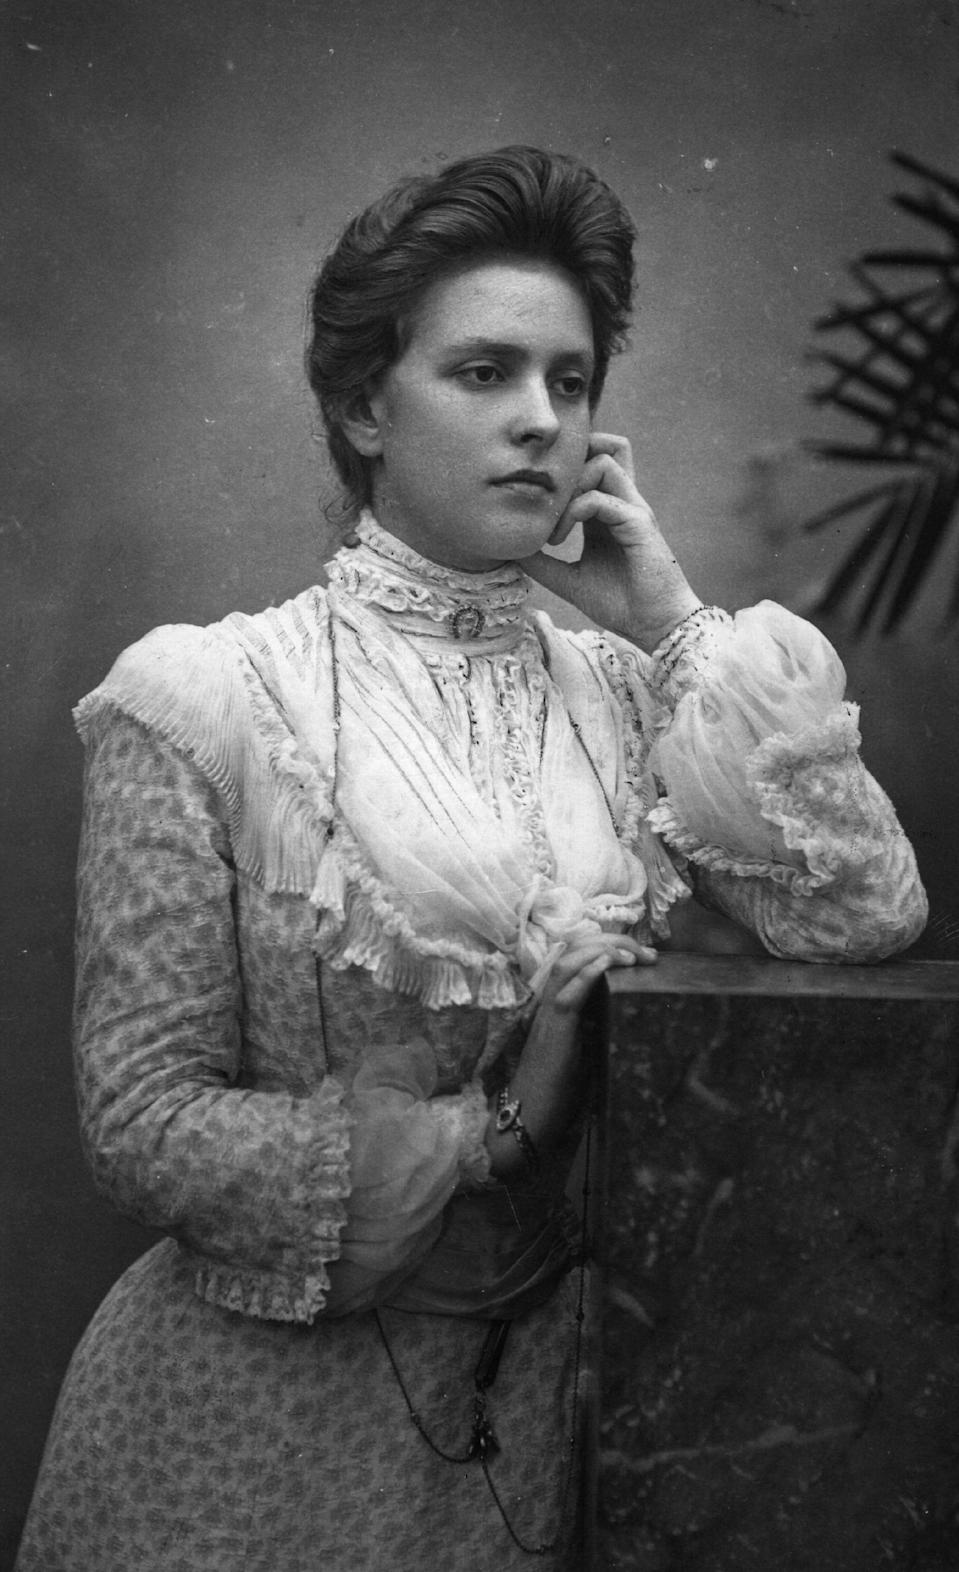 Princess Alice of Battenberg was a great grand-daughter of Queen Victoria. (Getty Images)